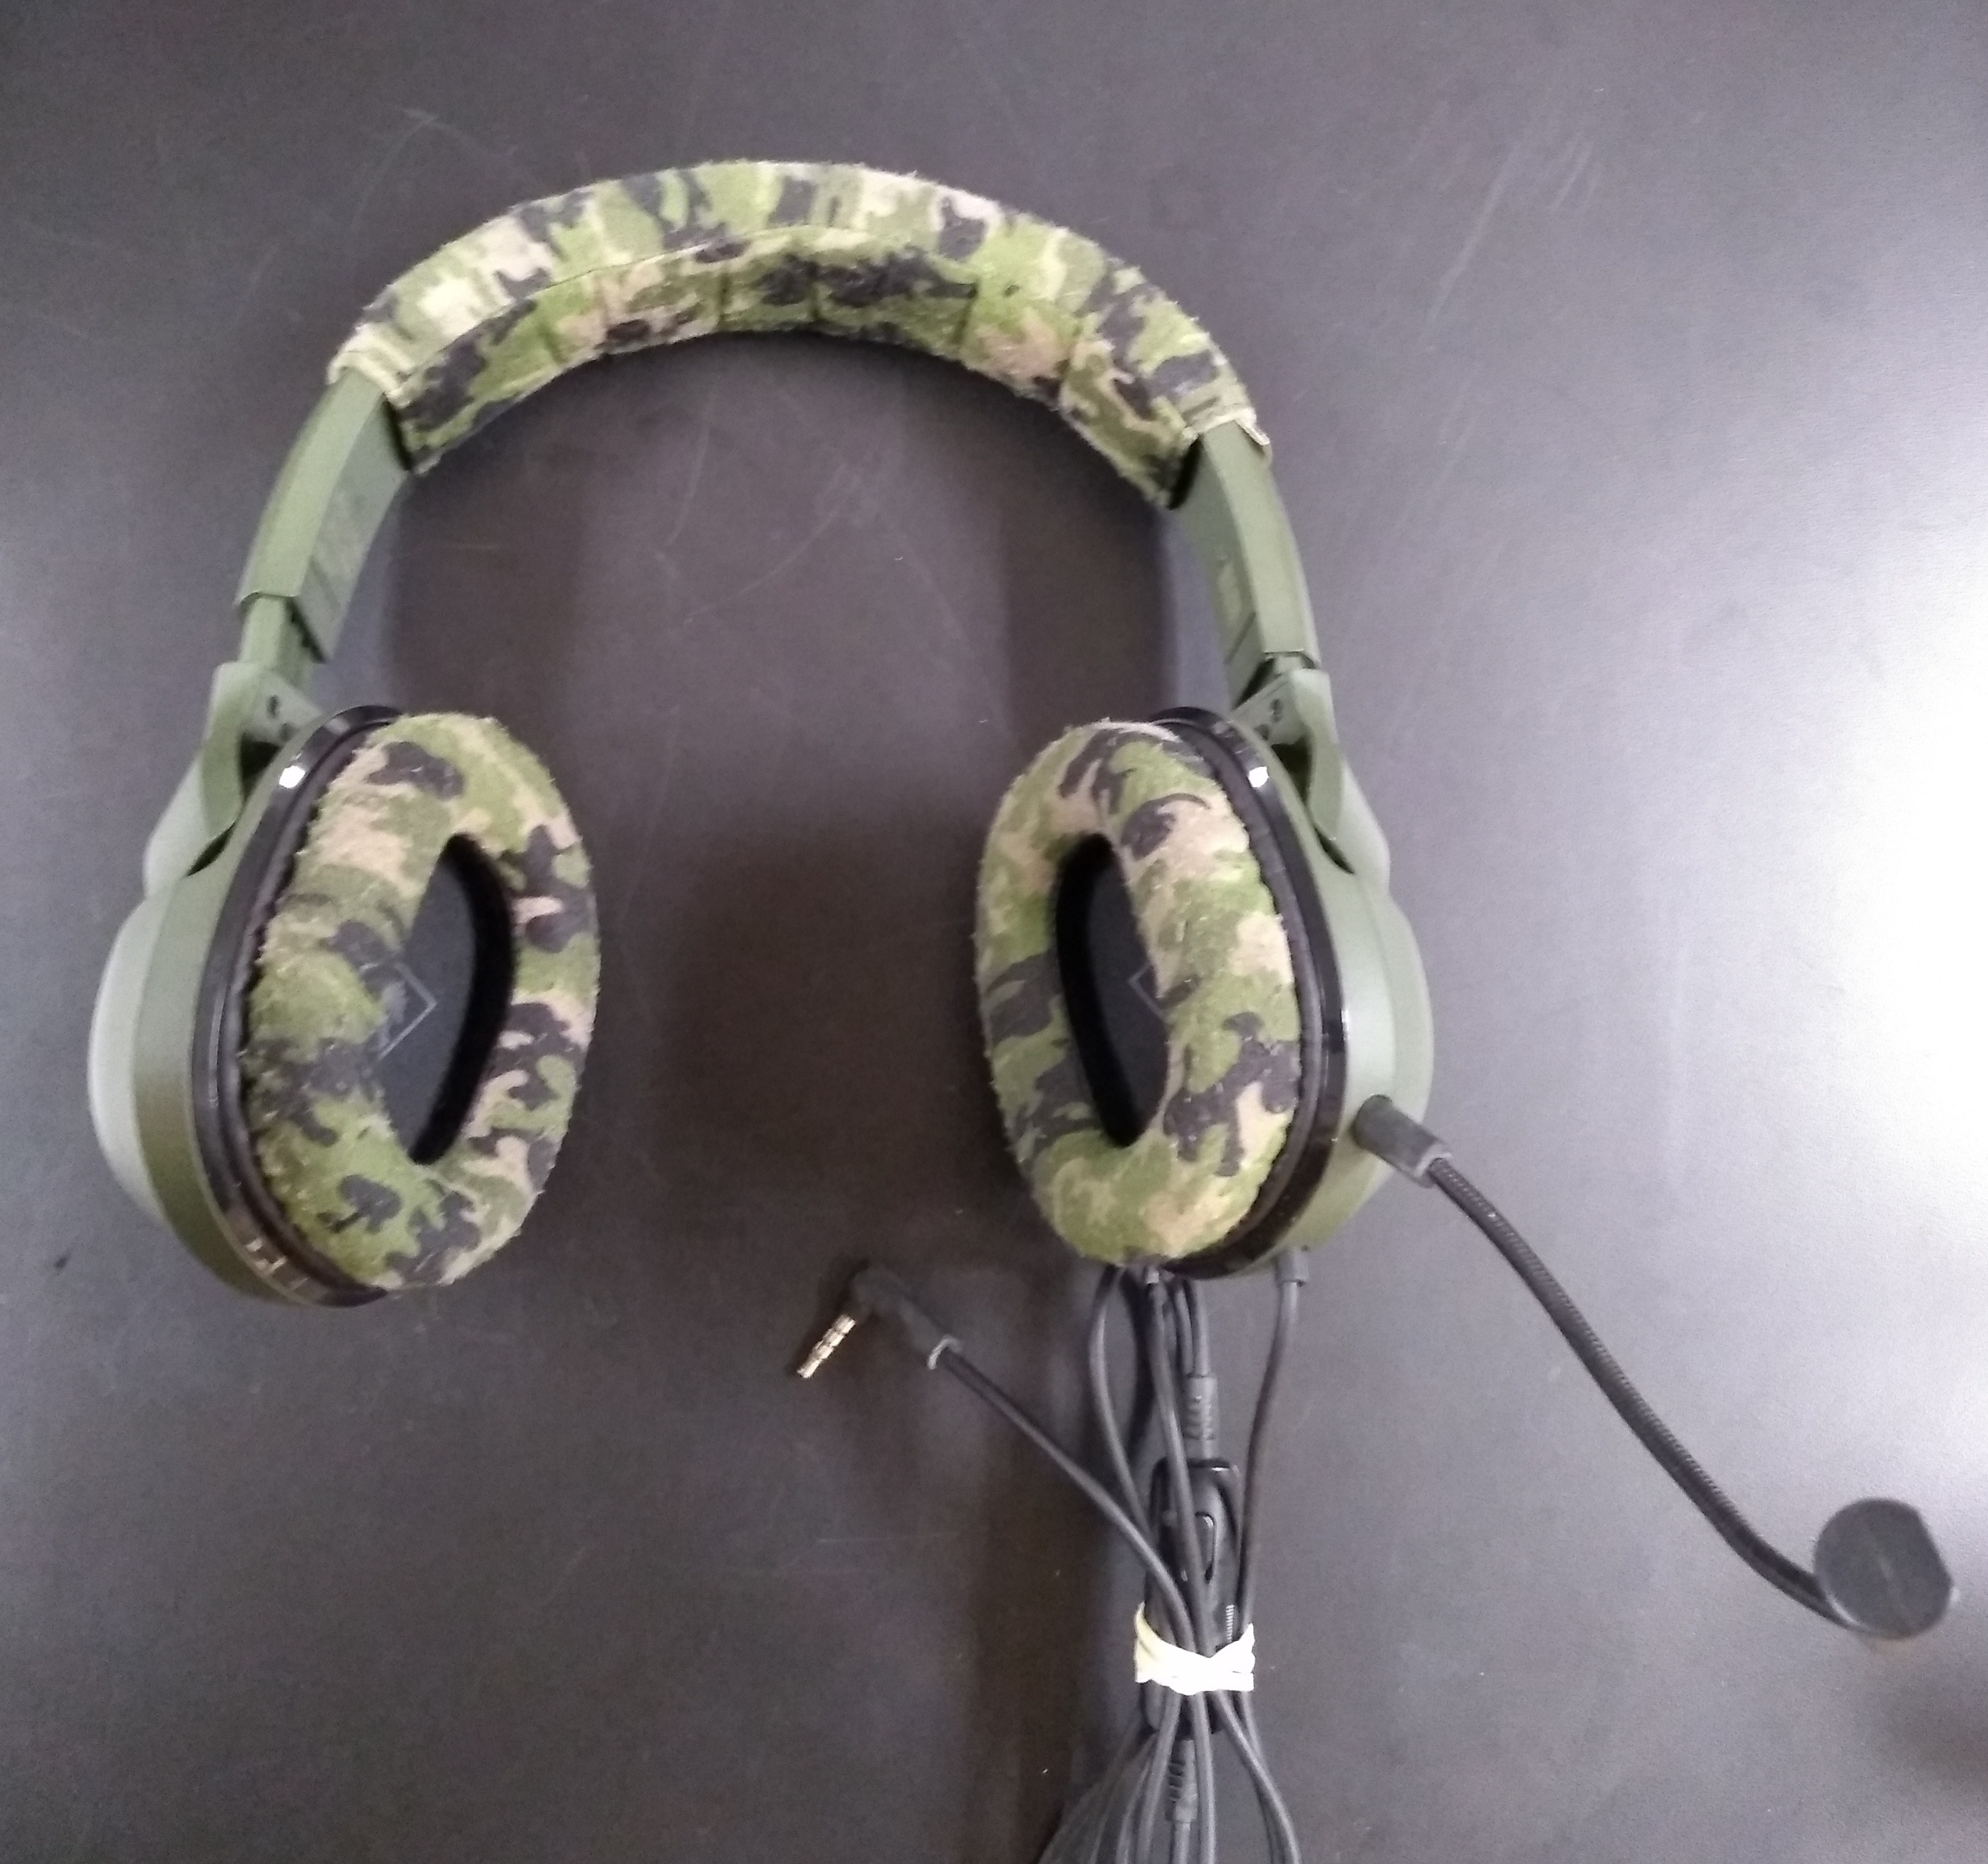 TURTLE BEACH GAMING HEADSET IN CAMO